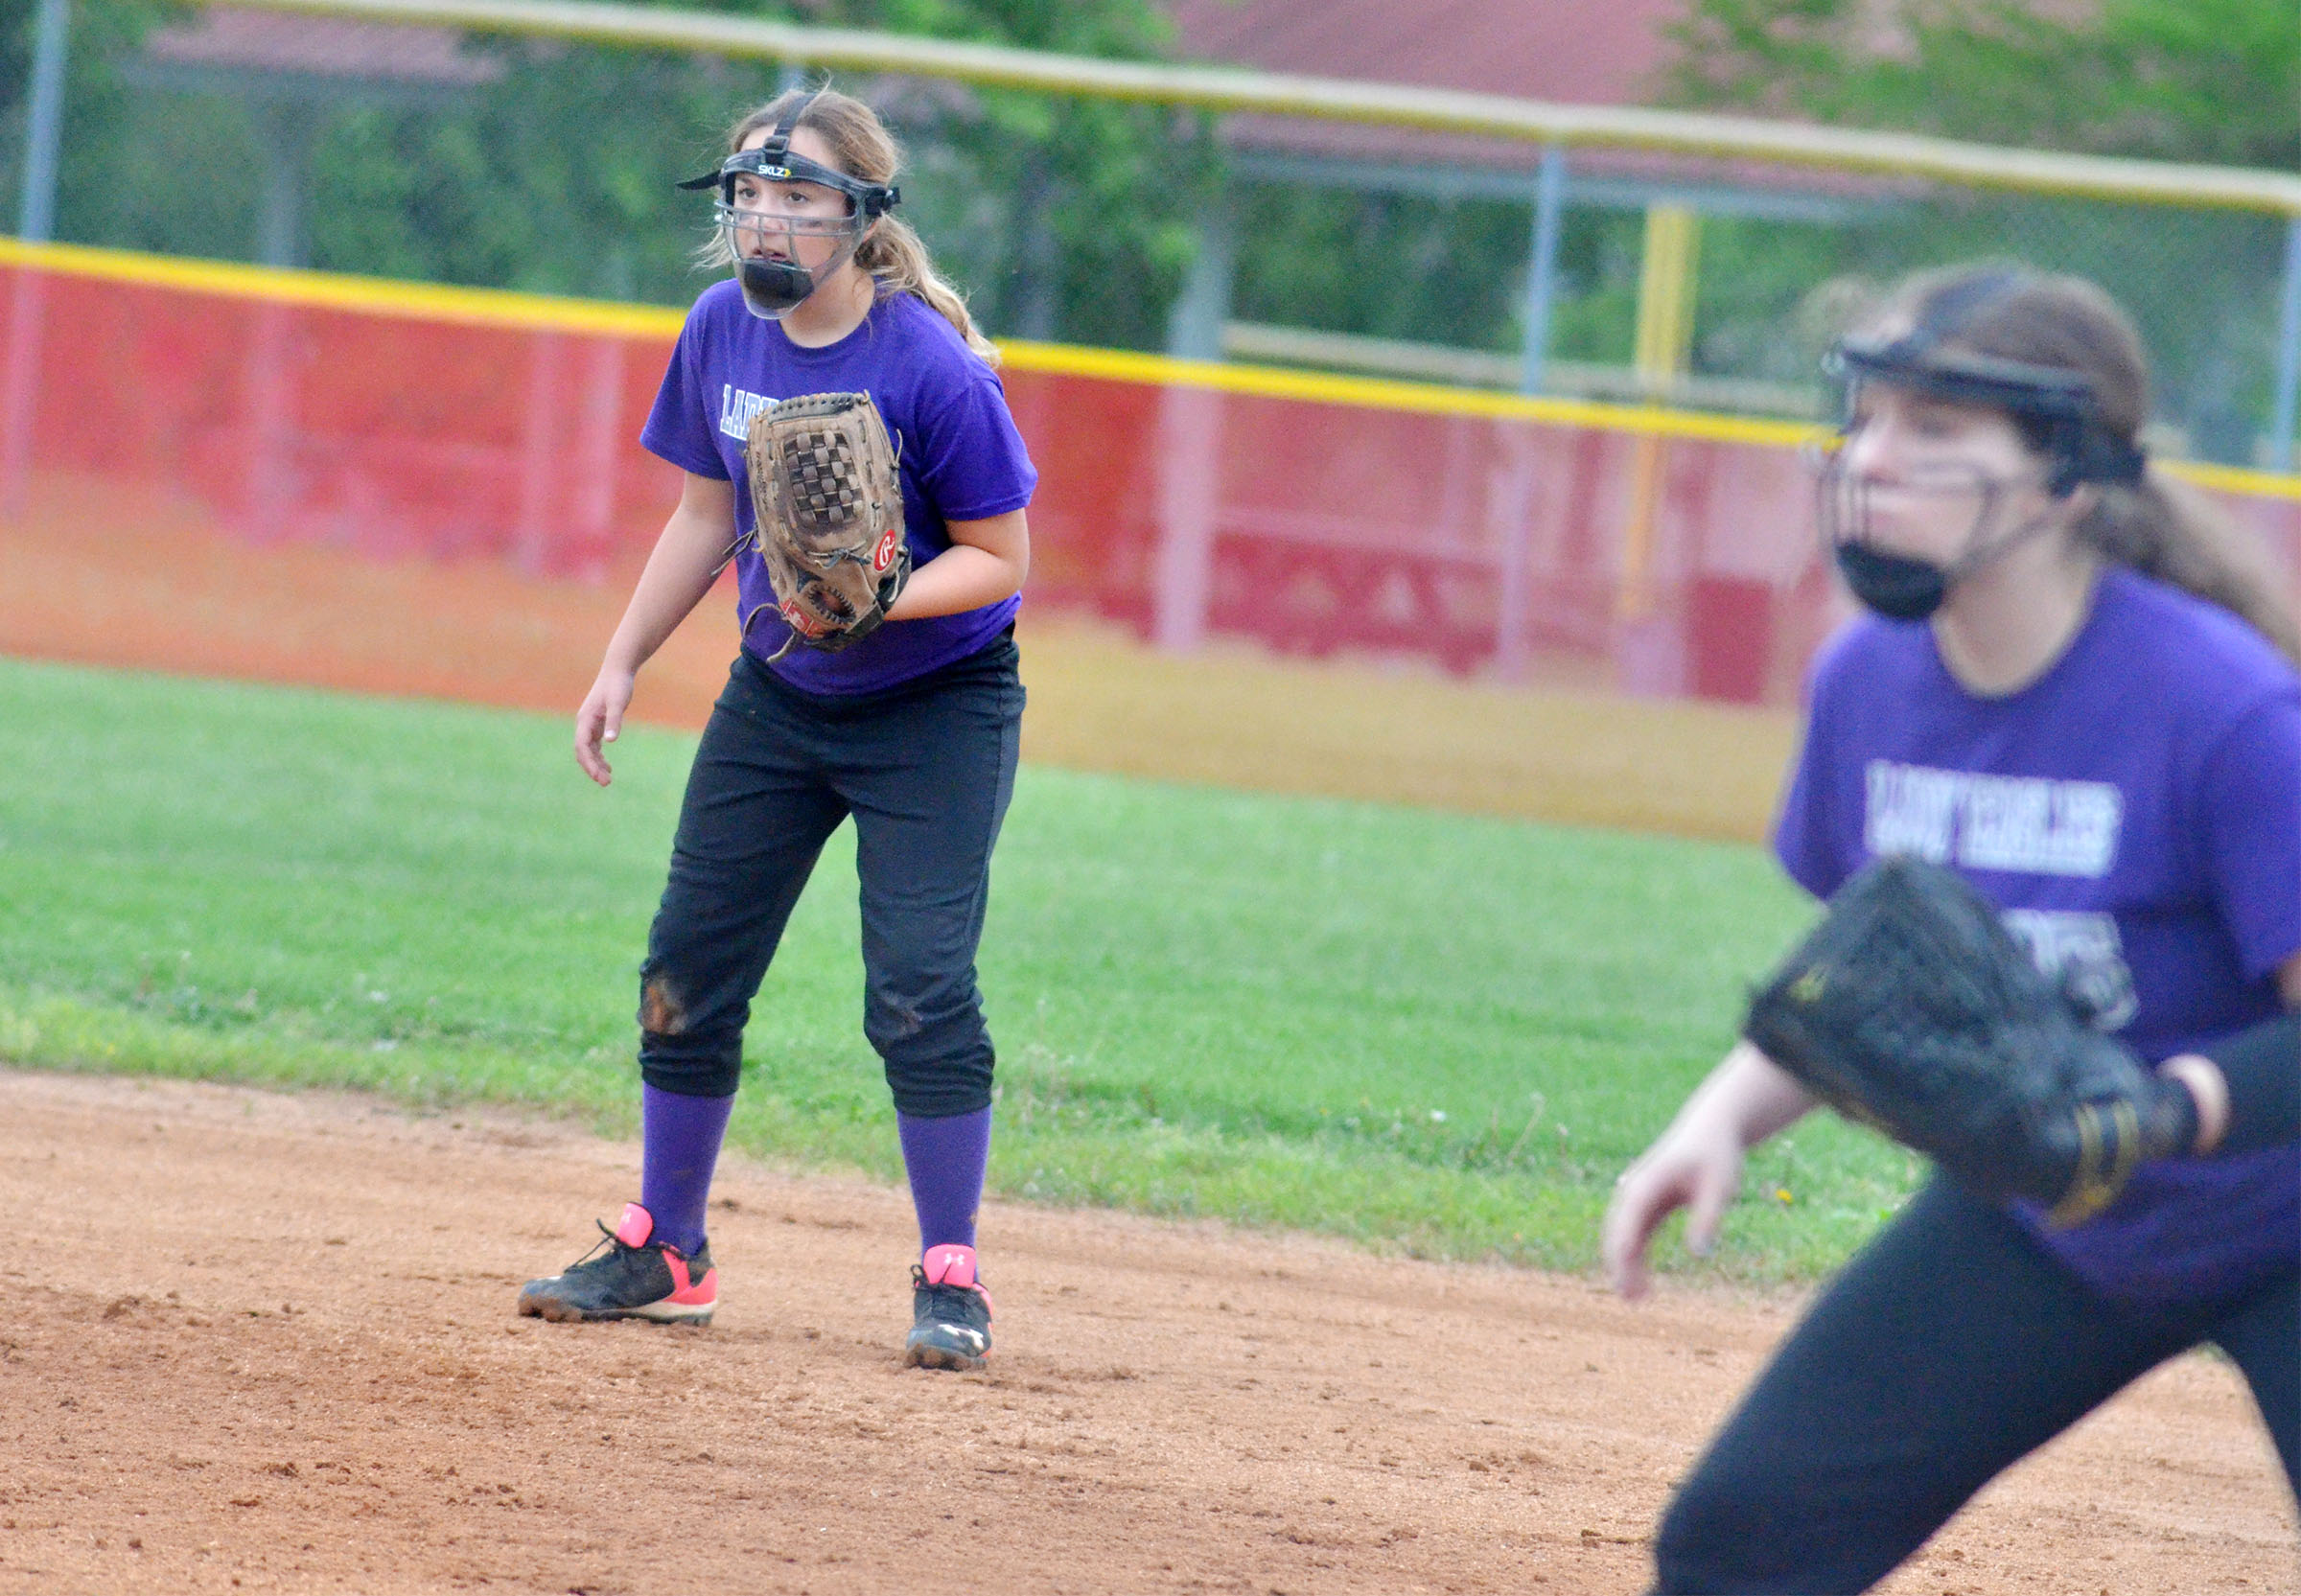 CMS sixth-grader Briana Davis watches the batter.